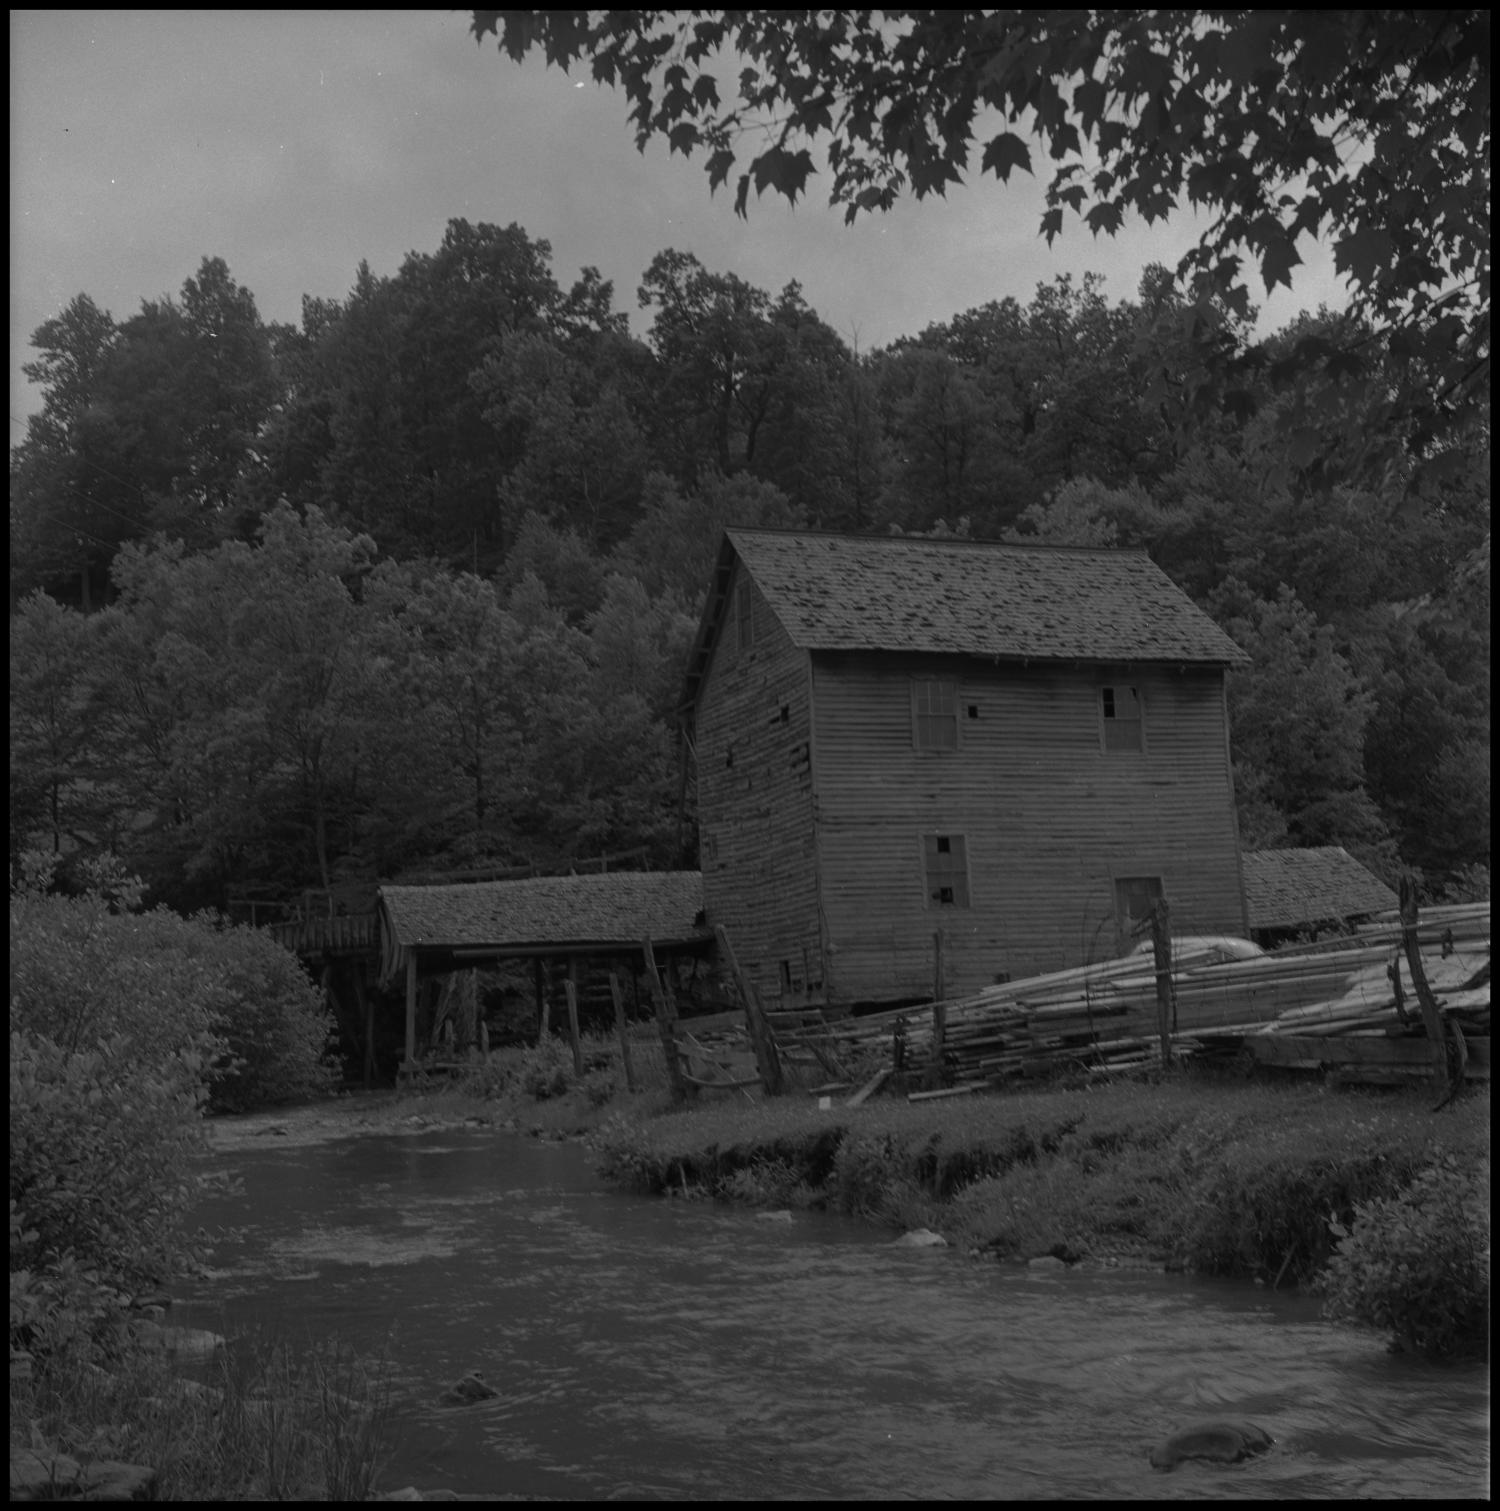 [Home by the creek], Photograph of a large two-story wooden house on the side of a creek. In the image, piles of wood boards are stacked along the fence line and large trees fill up the background.,